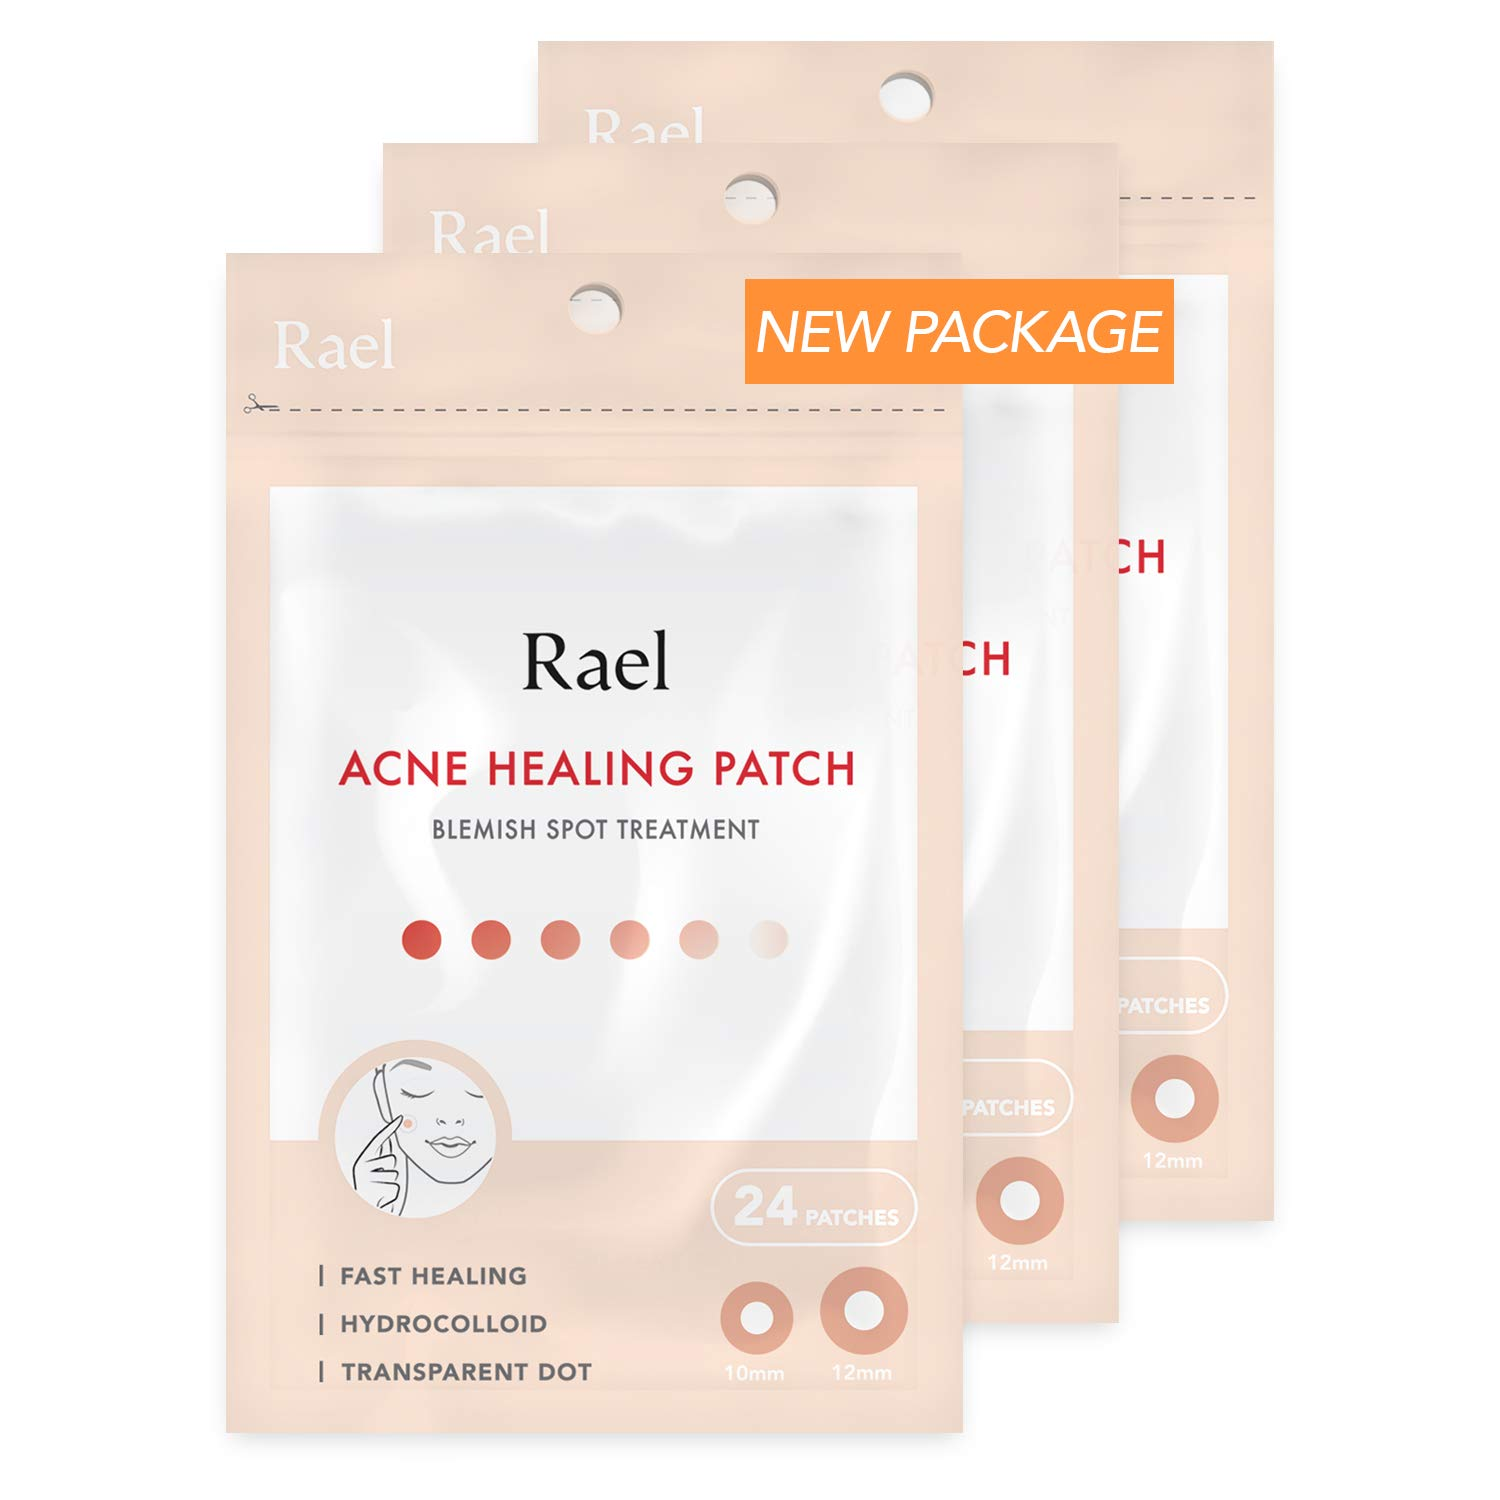 Rael Acne Pimple Healing Patch - Absorbing Cover, Invisible, Blemish Spot, Hydrocolloid, Skin Treatment, Facial Stickers, Two Sizes, Blends in with skin (72 Patches, 3Pack) by Rael